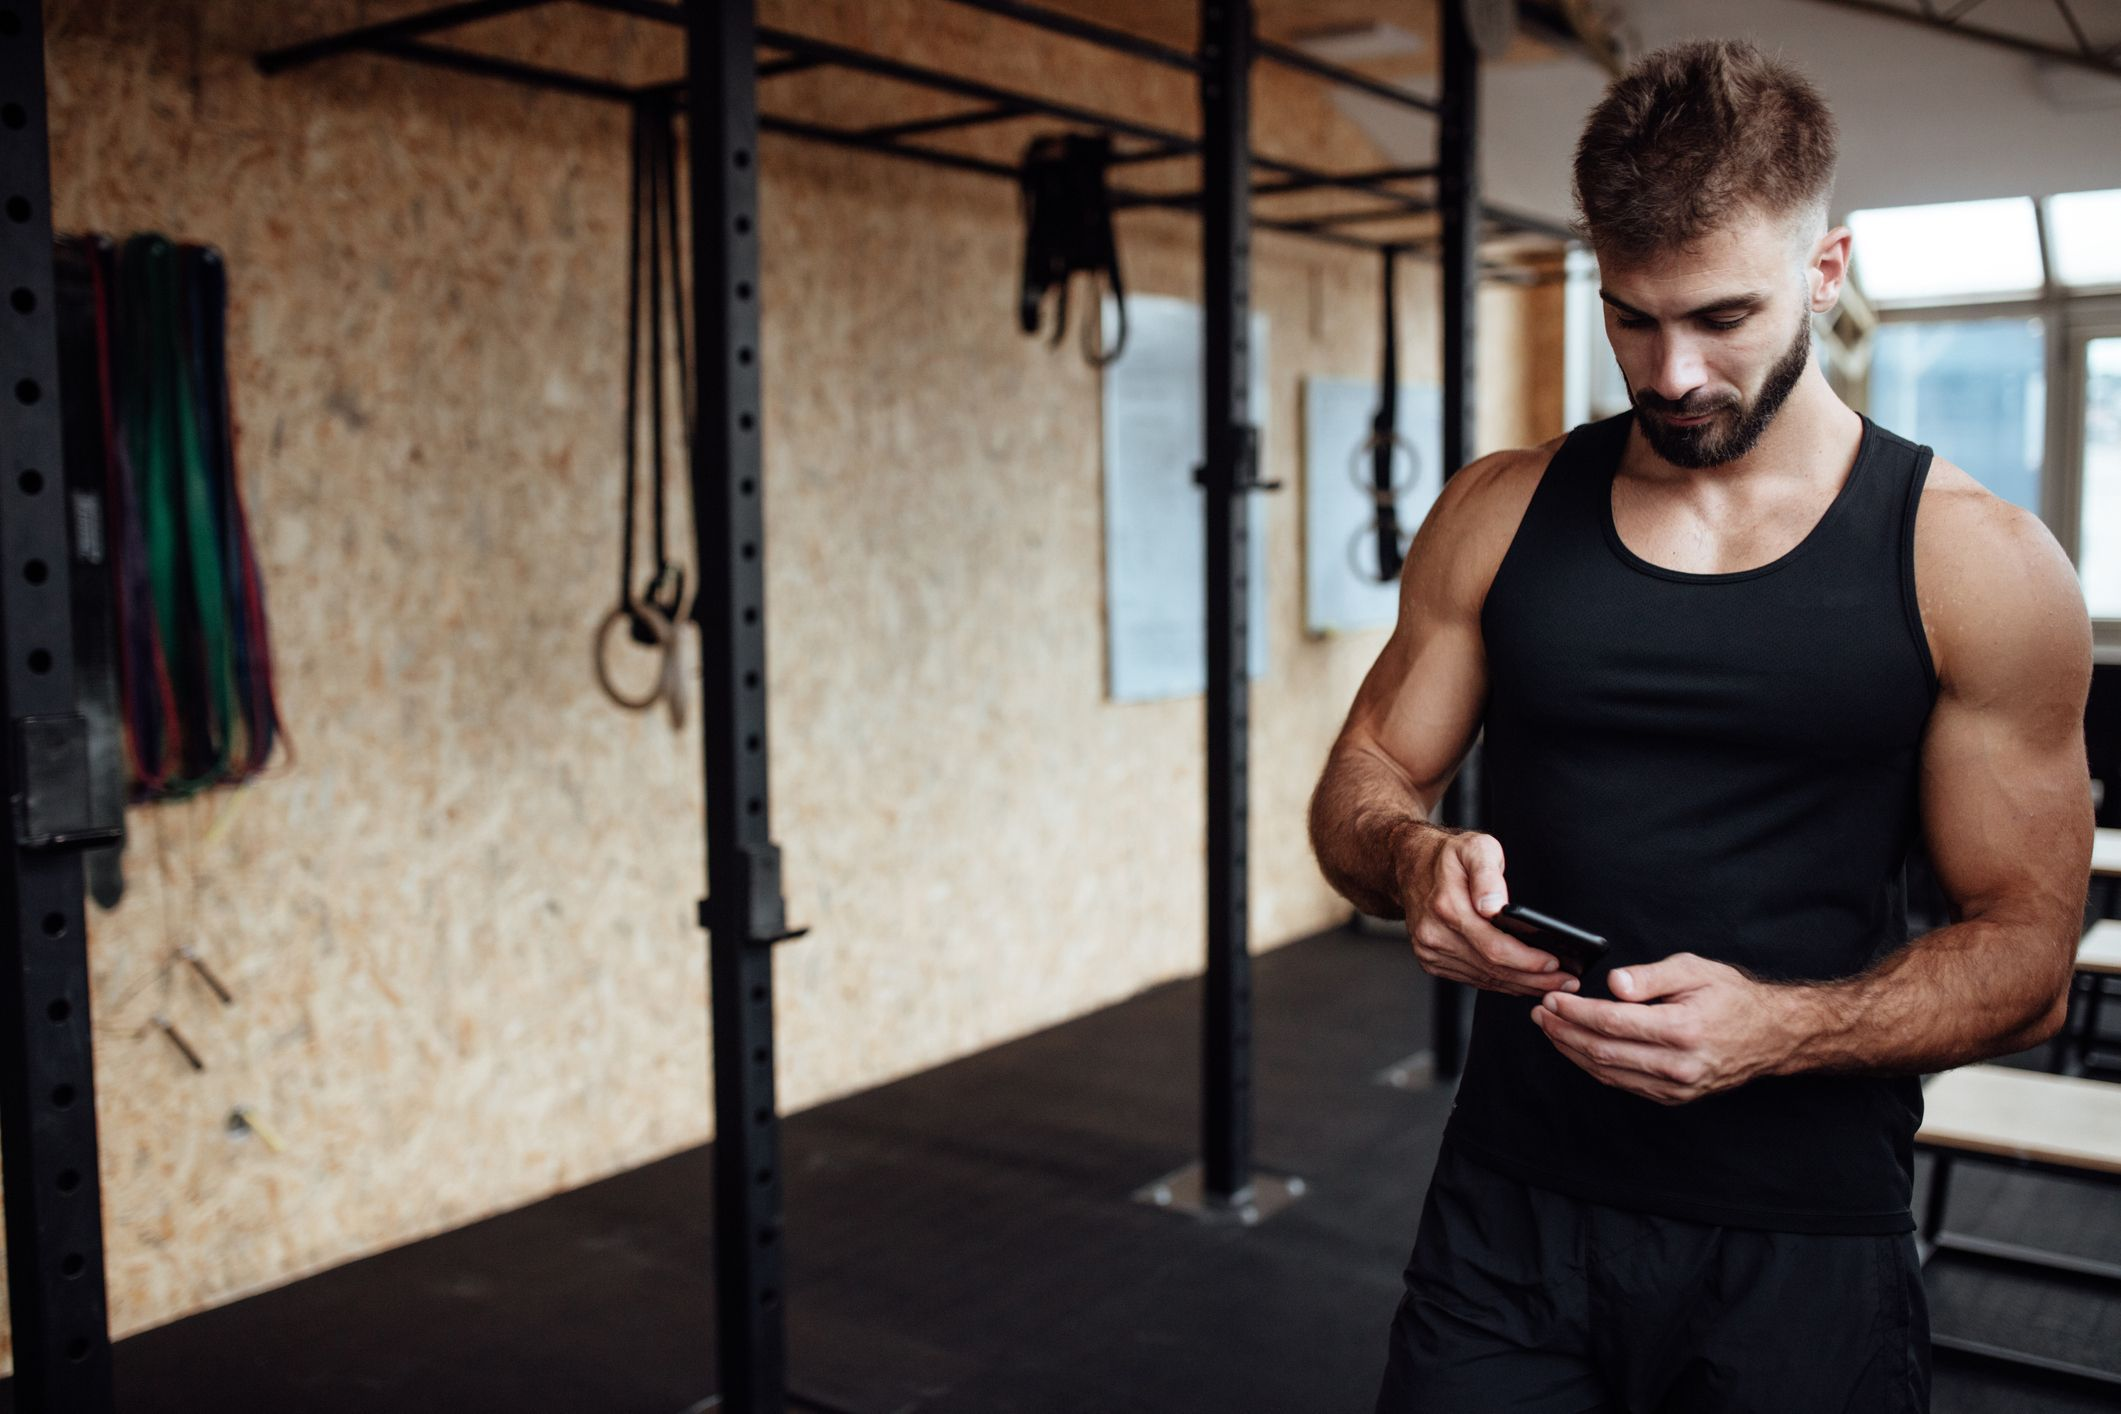 15 Best Weight Loss Apps - The Best Apps to Lose Weight